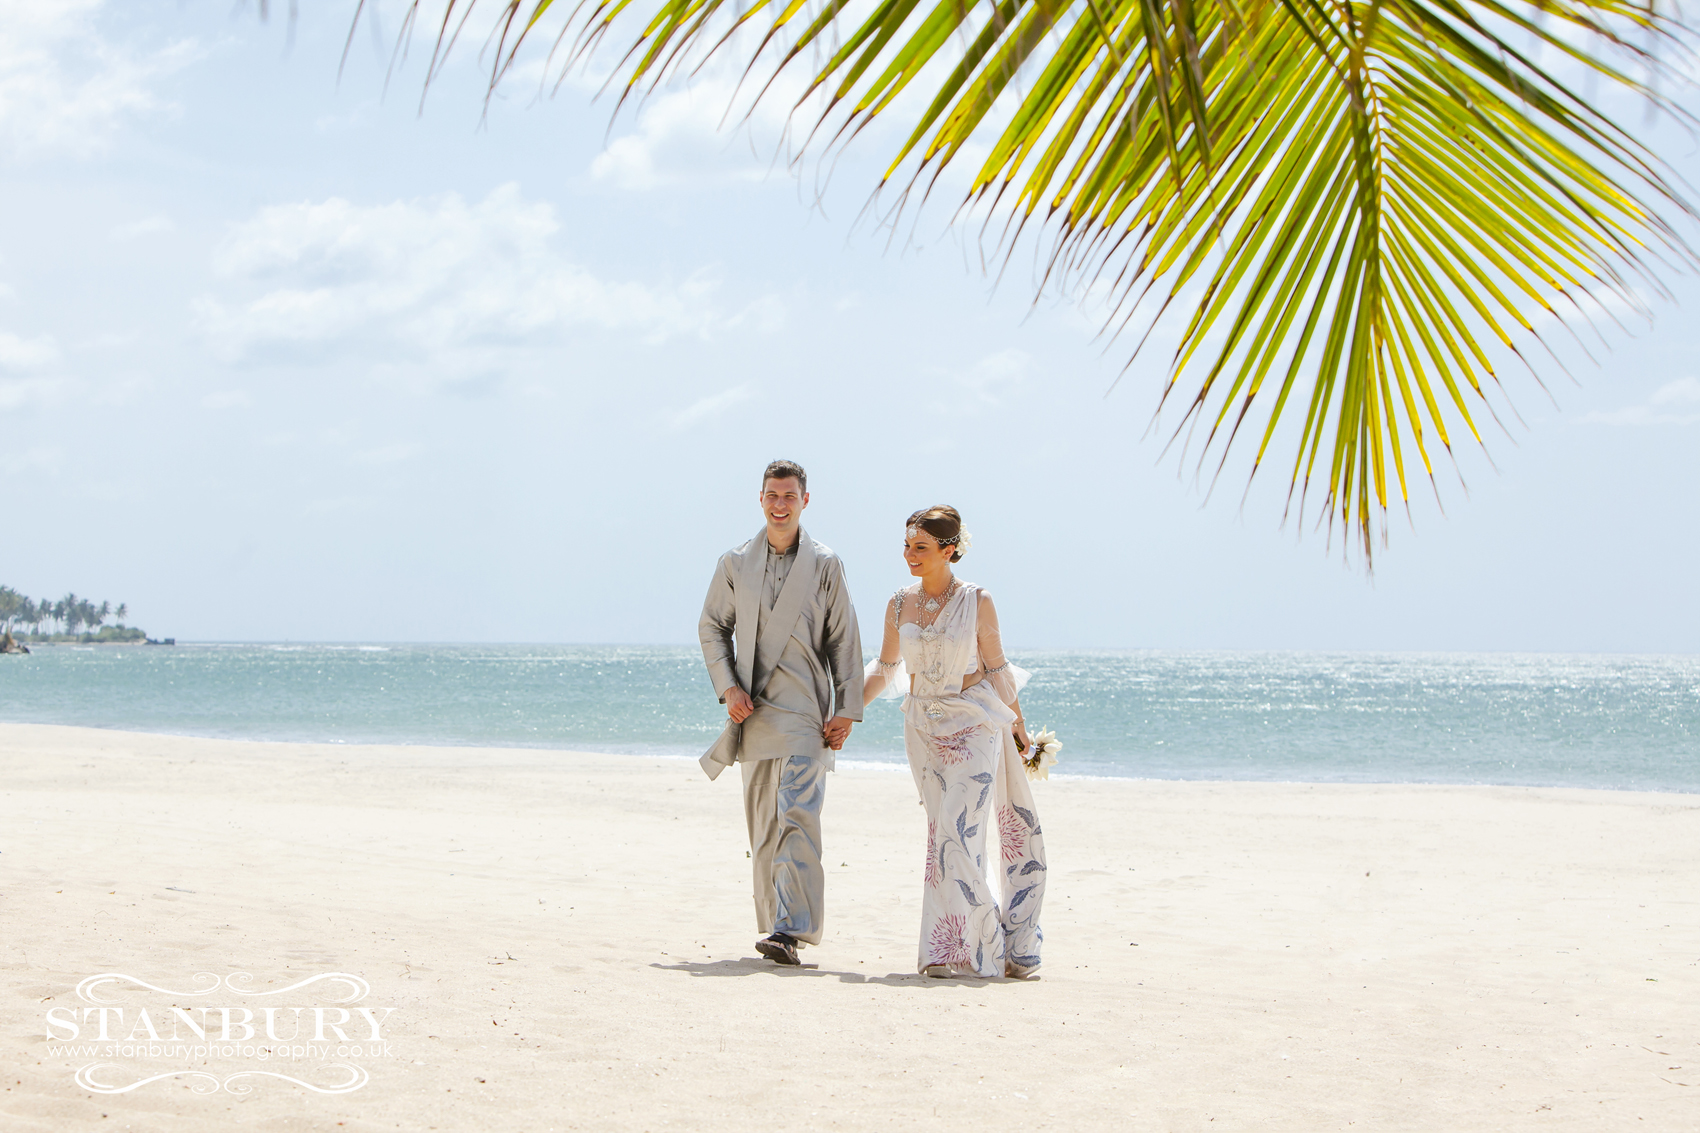 sri lanka destination wedding photographers stanbury photography